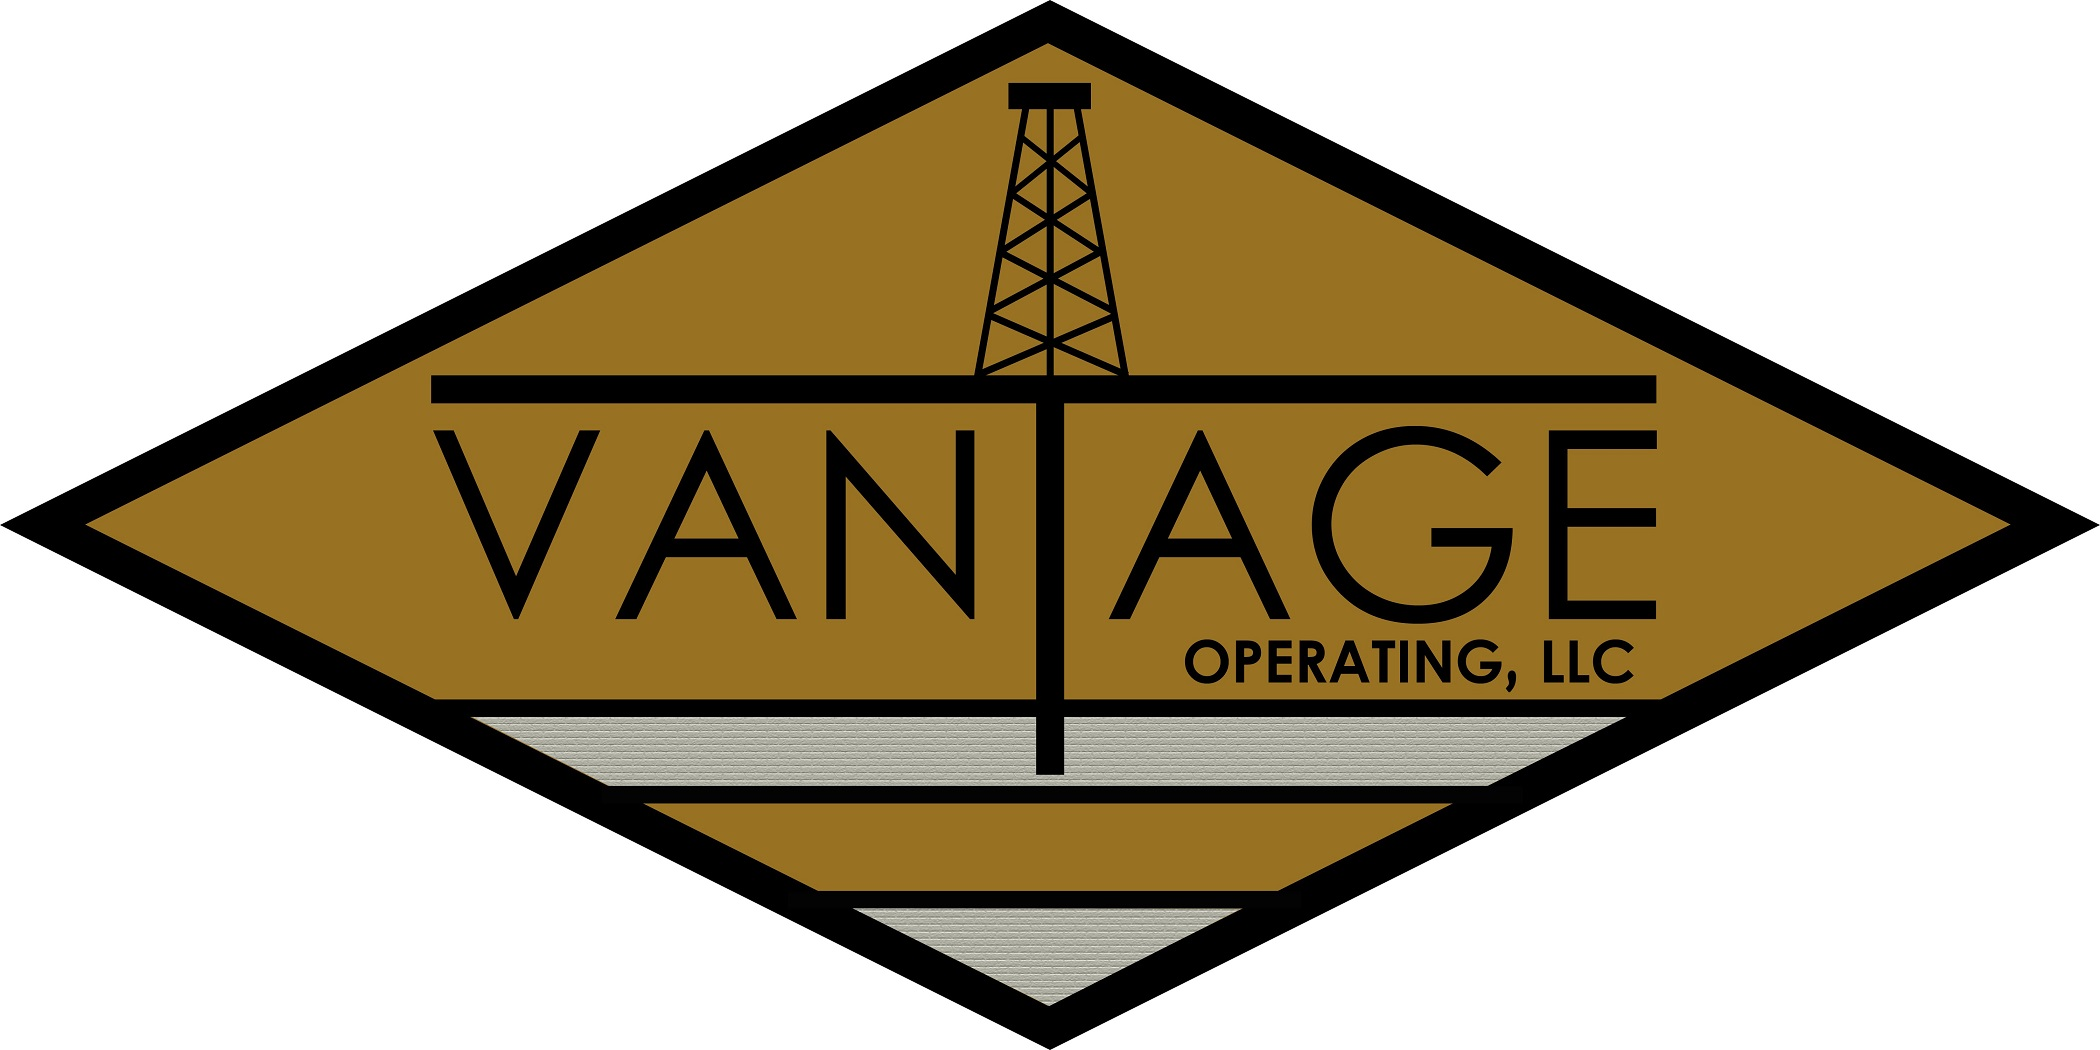 Justin Little & Vantage Operating, LLC